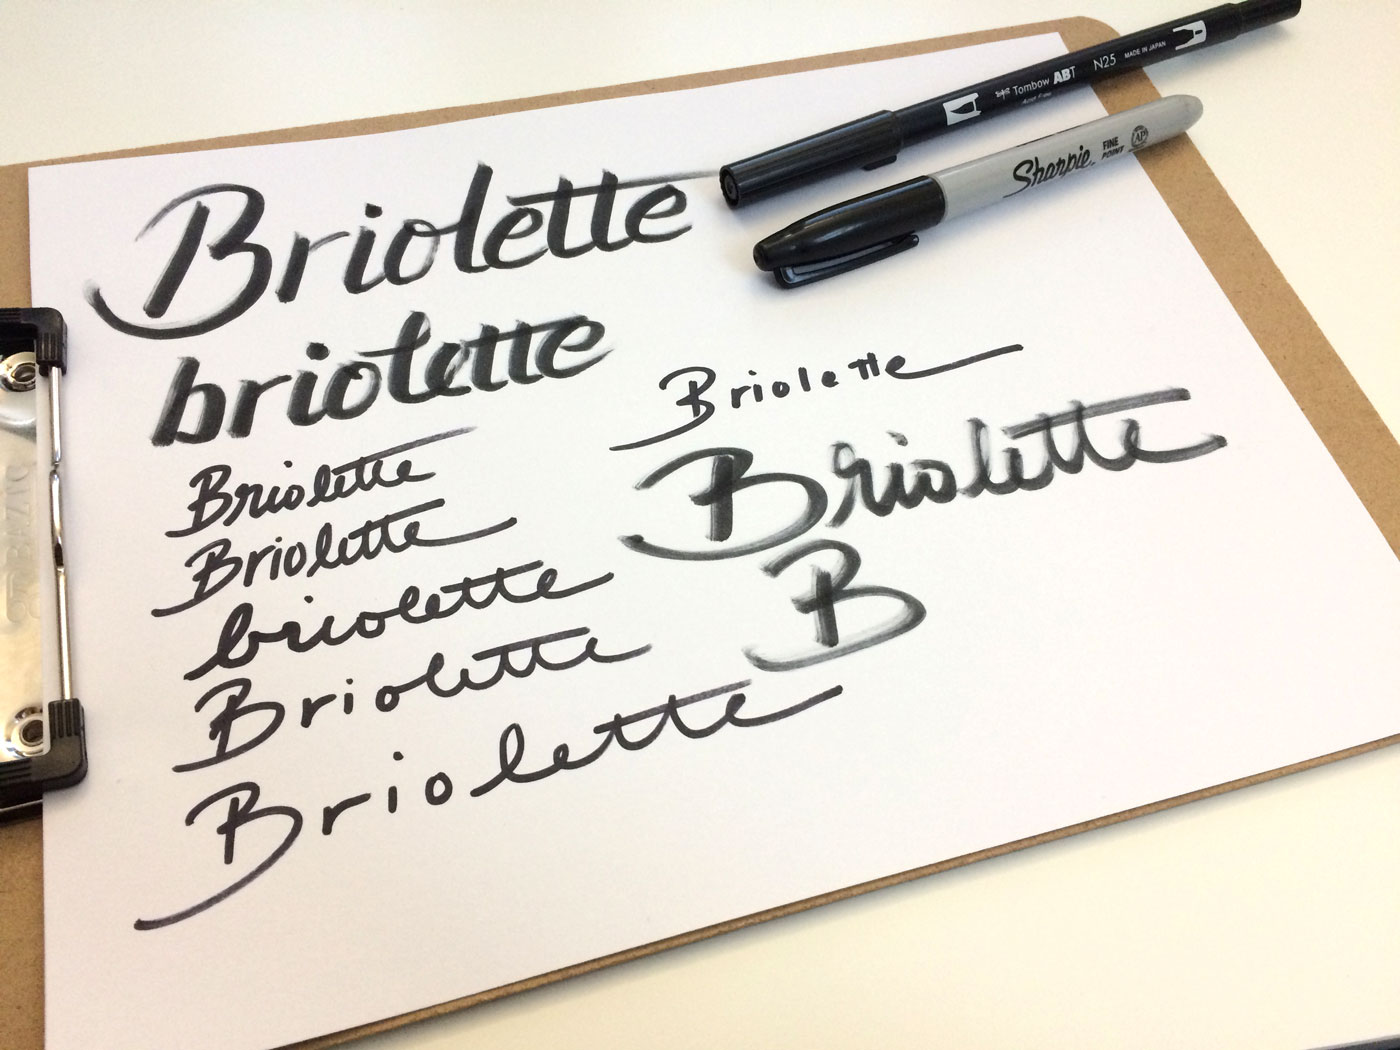 Learn how to create your own hand lettered blog header - Draw your header multiple times and experiment with different handwriting styles